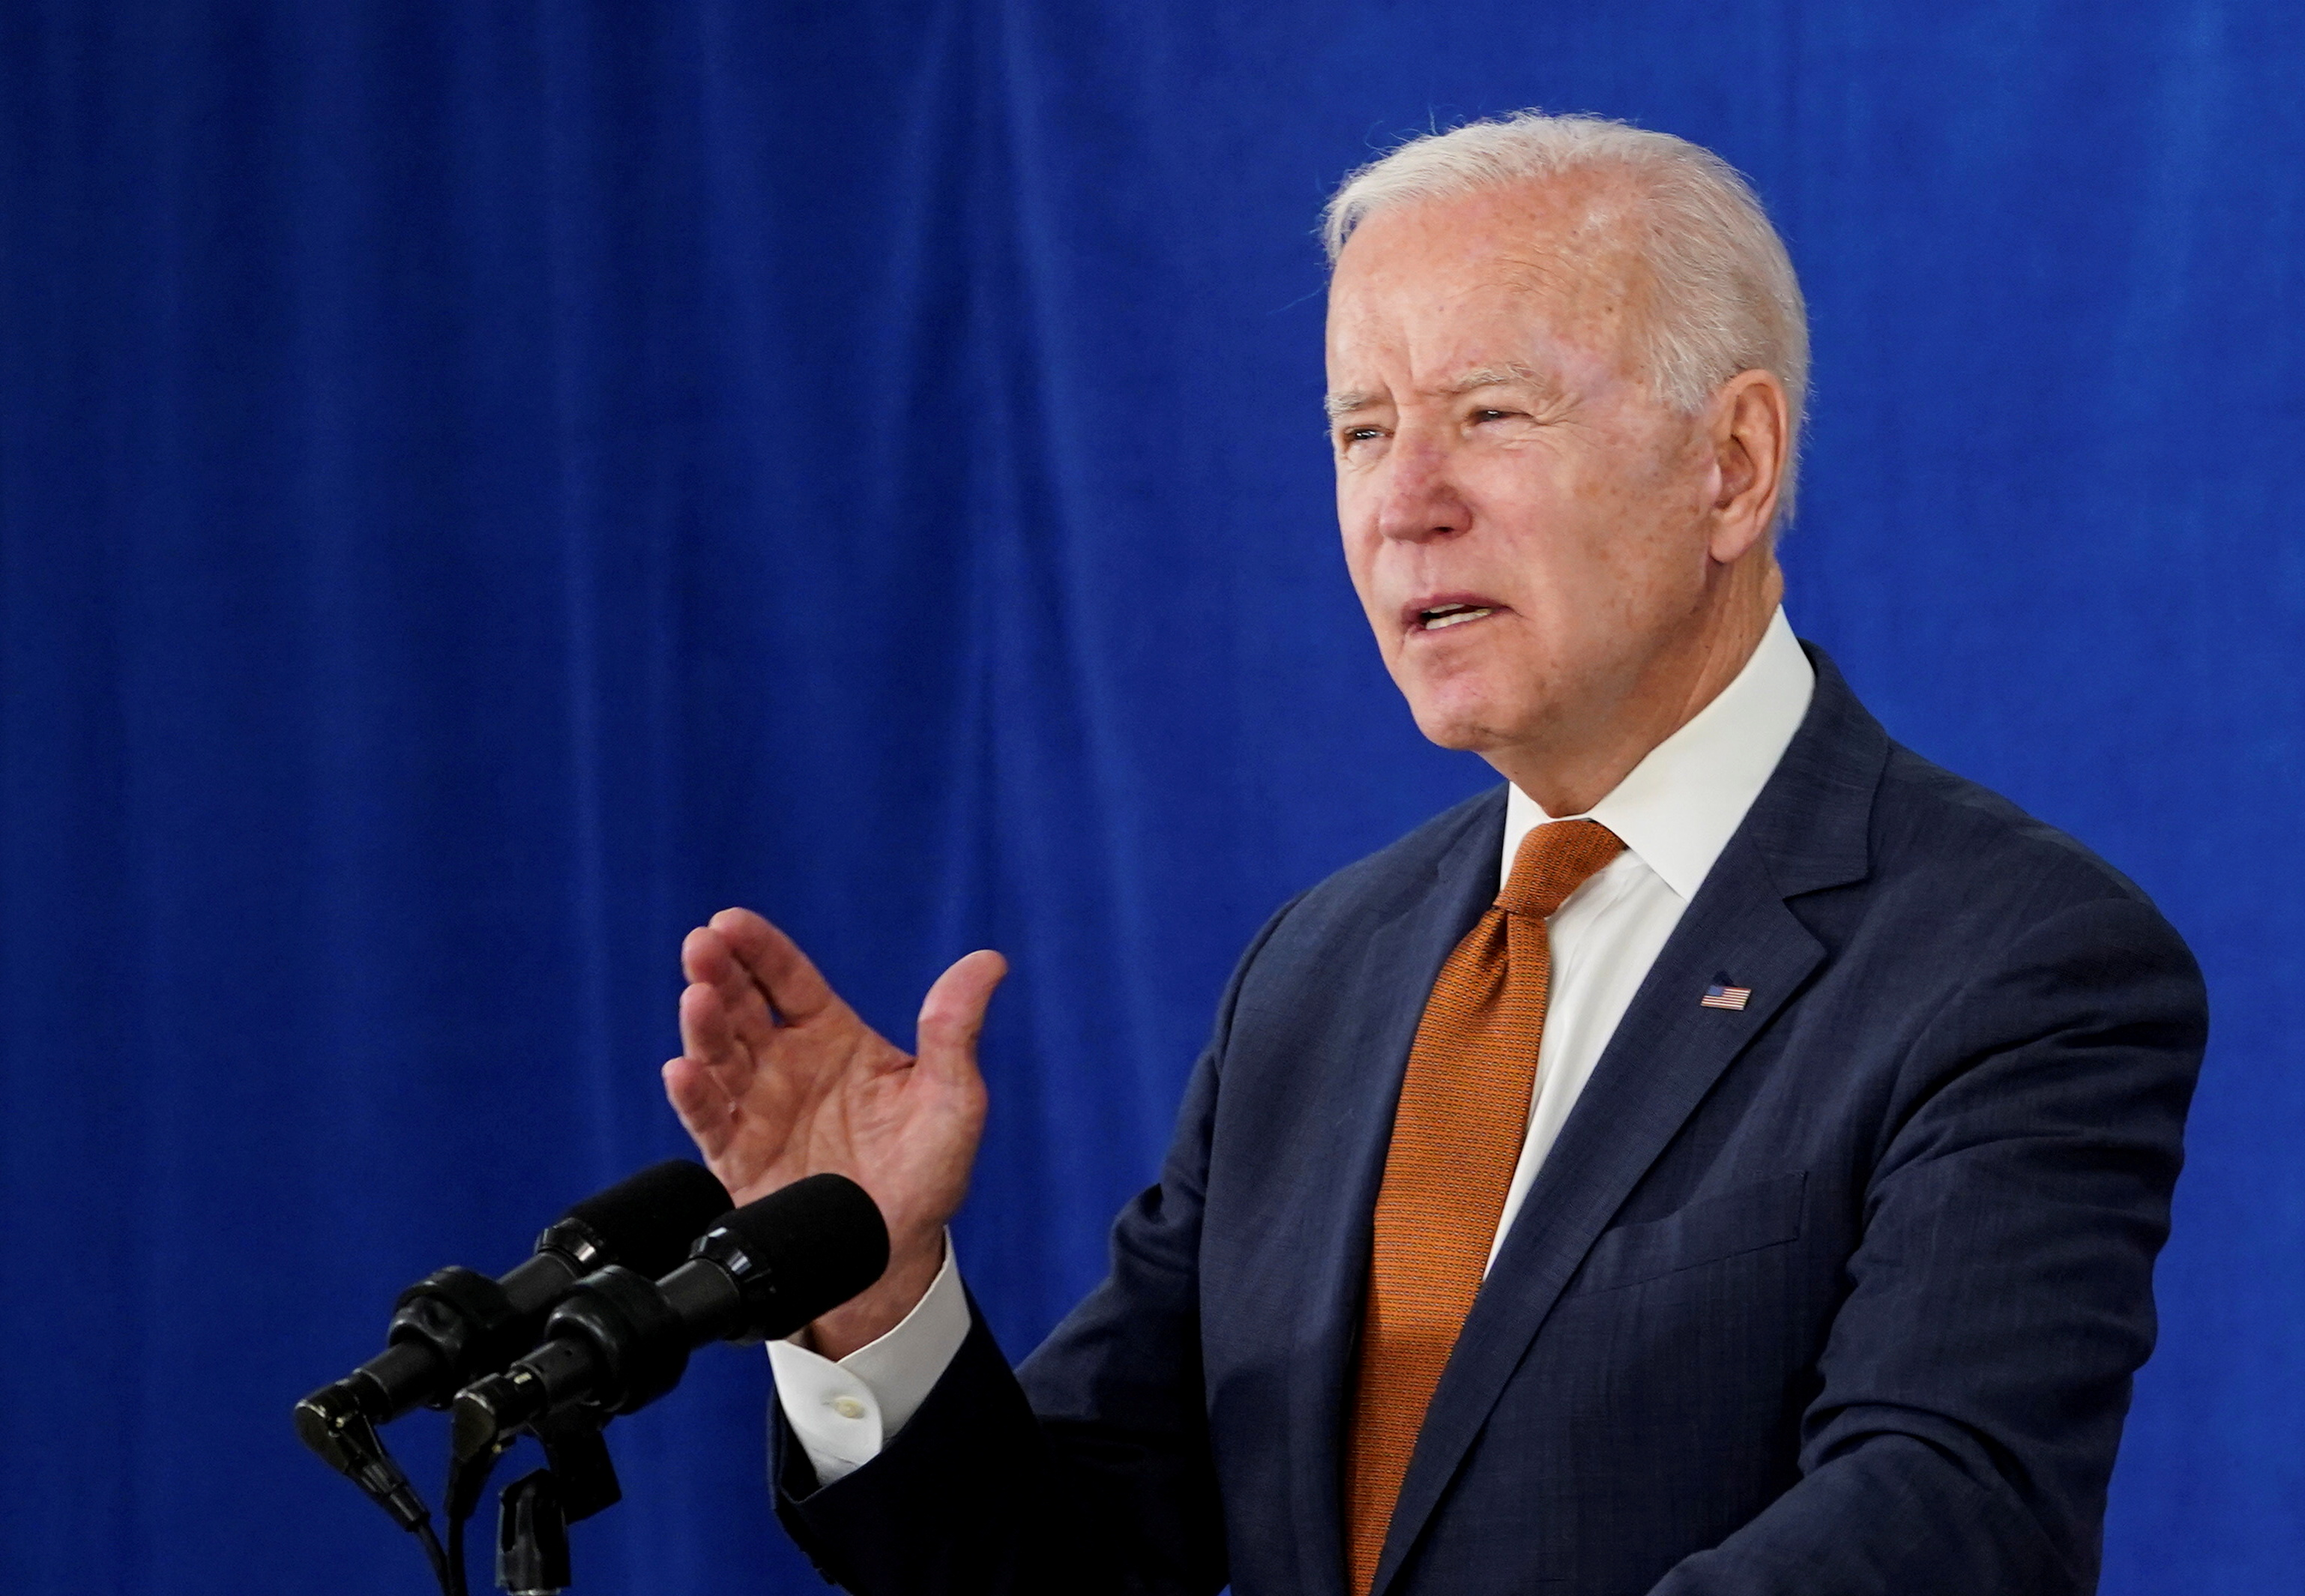 U.S. President Joe Biden delivers remarks on the May jobs report at the Rehoboth Beach Convention Center in Rehoboth Beach, Delaware, U.S., June 4, 2021. REUTERS/Kevin Lamarque